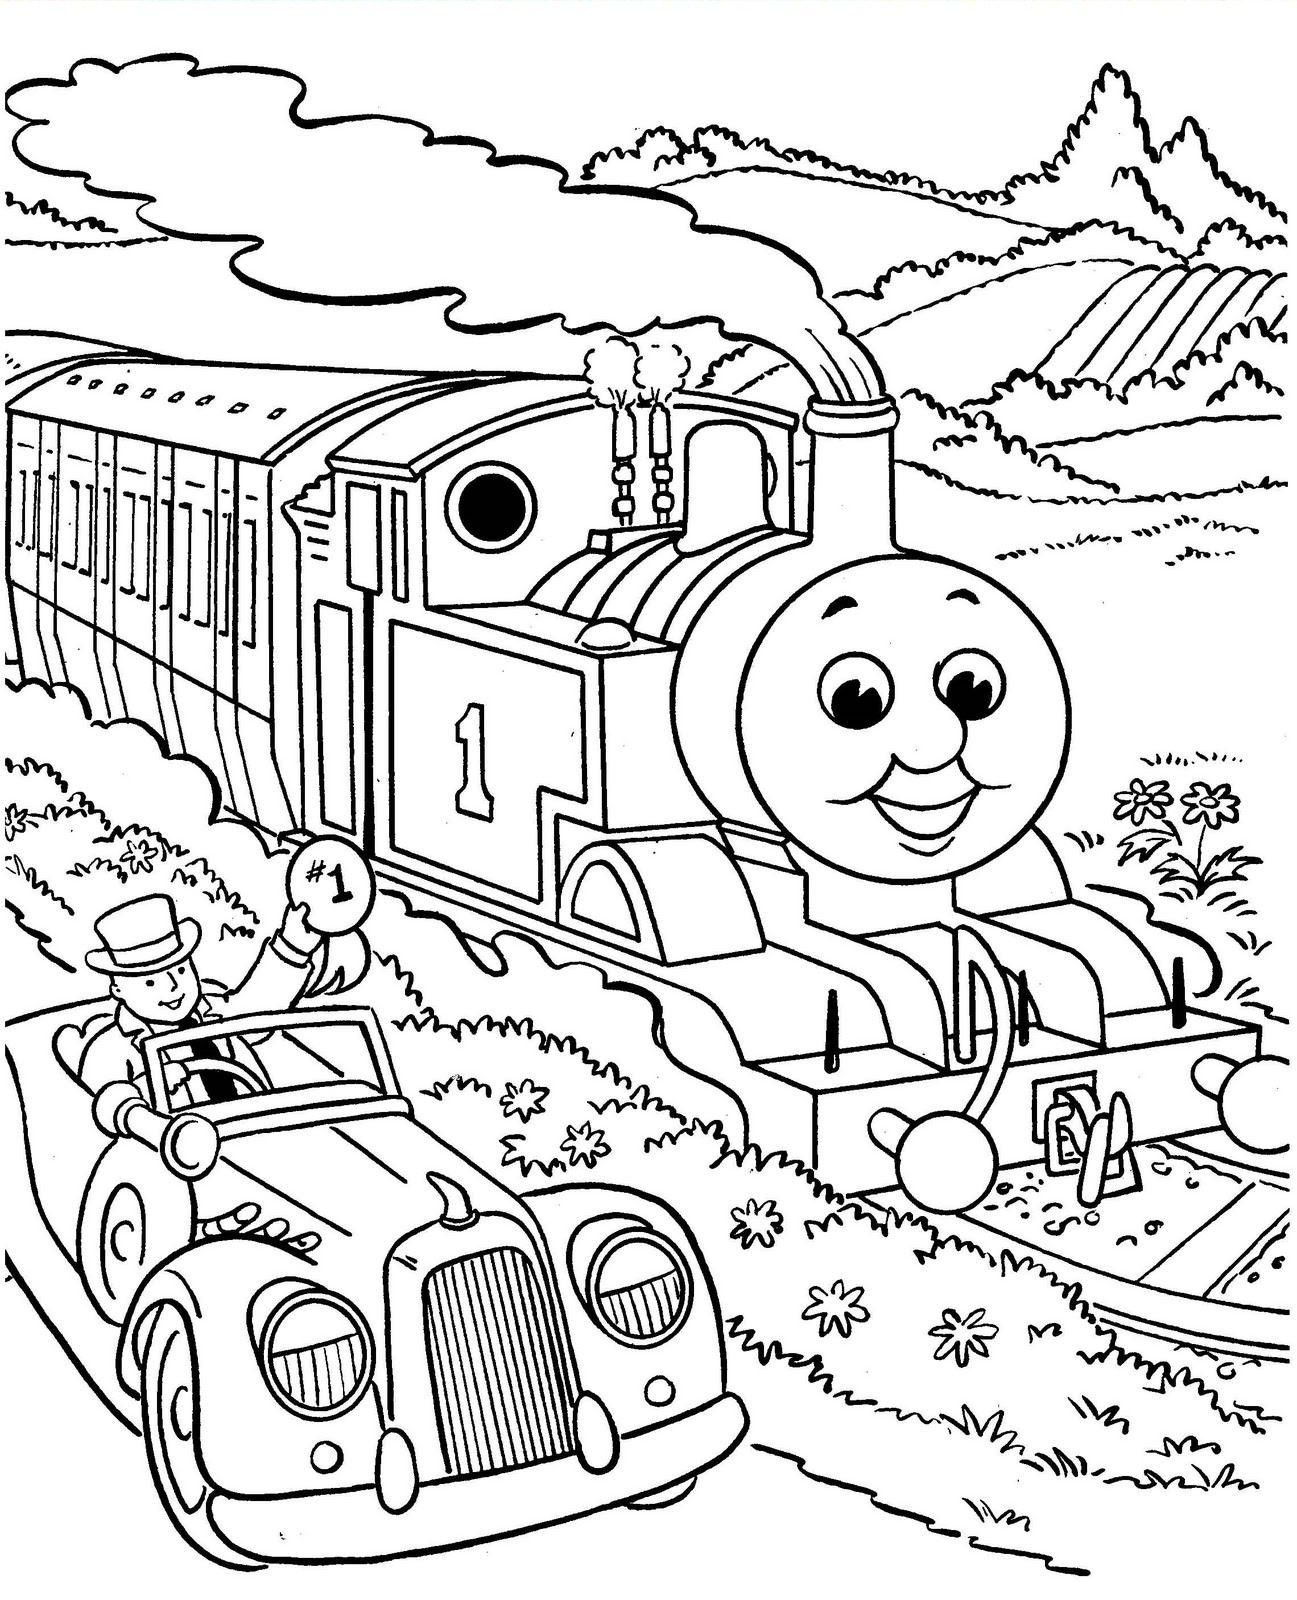 1297x1600 Thomas Friends Coloring Pages Race For Kids Fresh Thomas